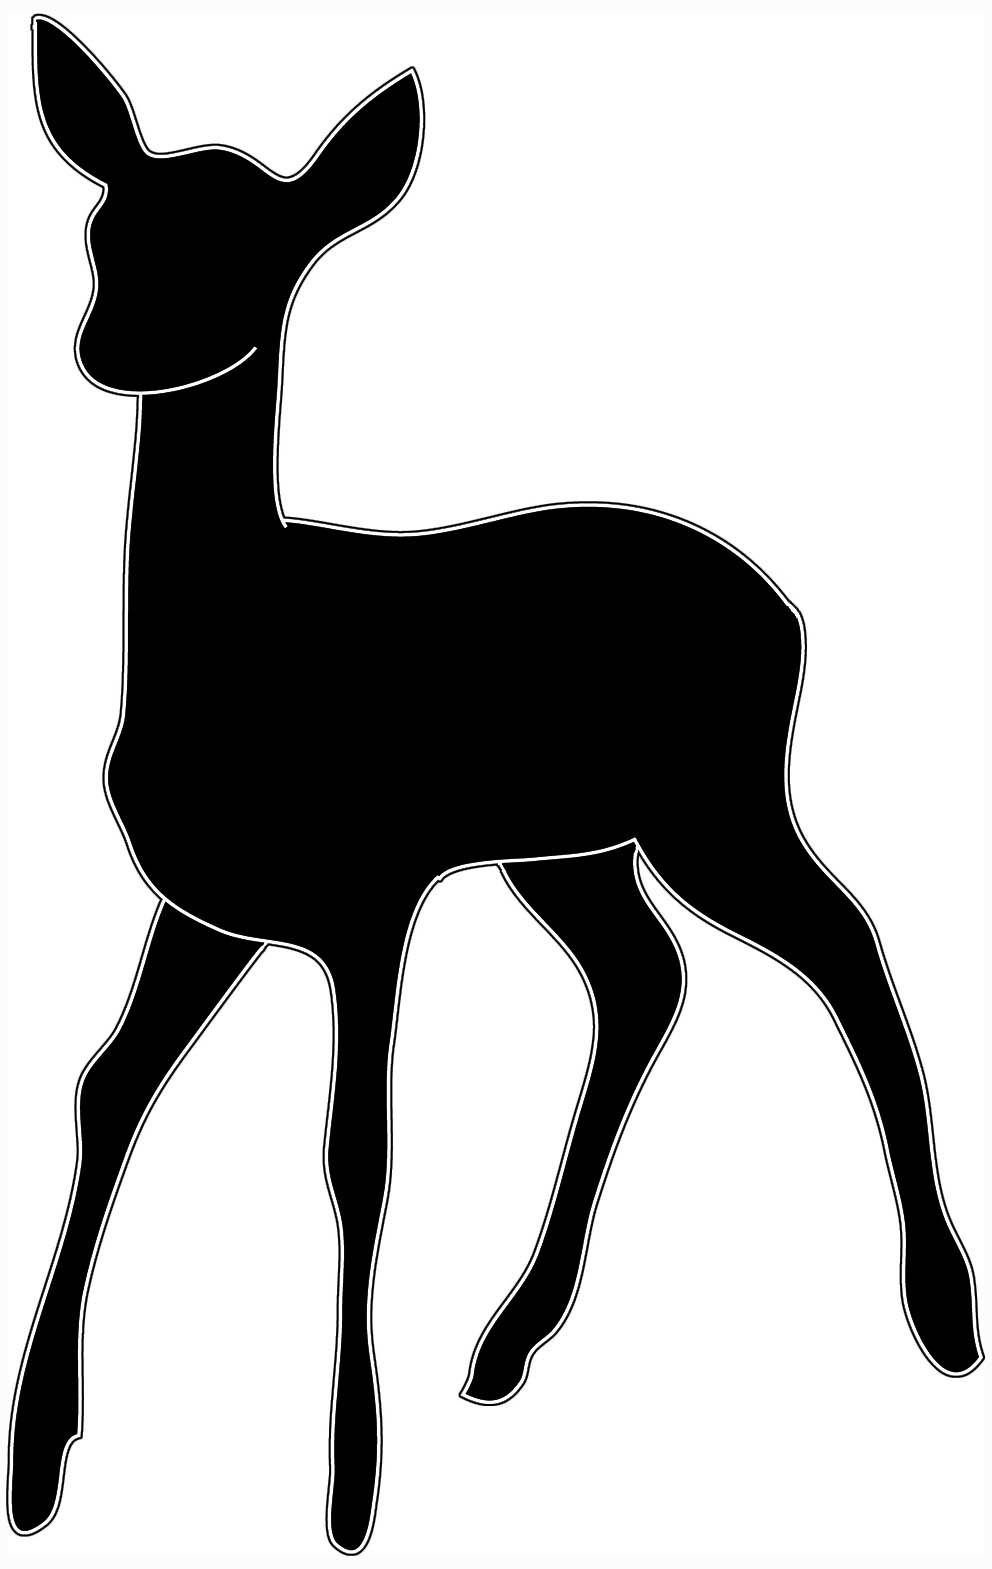 Black and white clipart of roger troutman graphic transparent Deer Head Clipart Black And White | Clipart Panda - Free Clipart ... graphic transparent